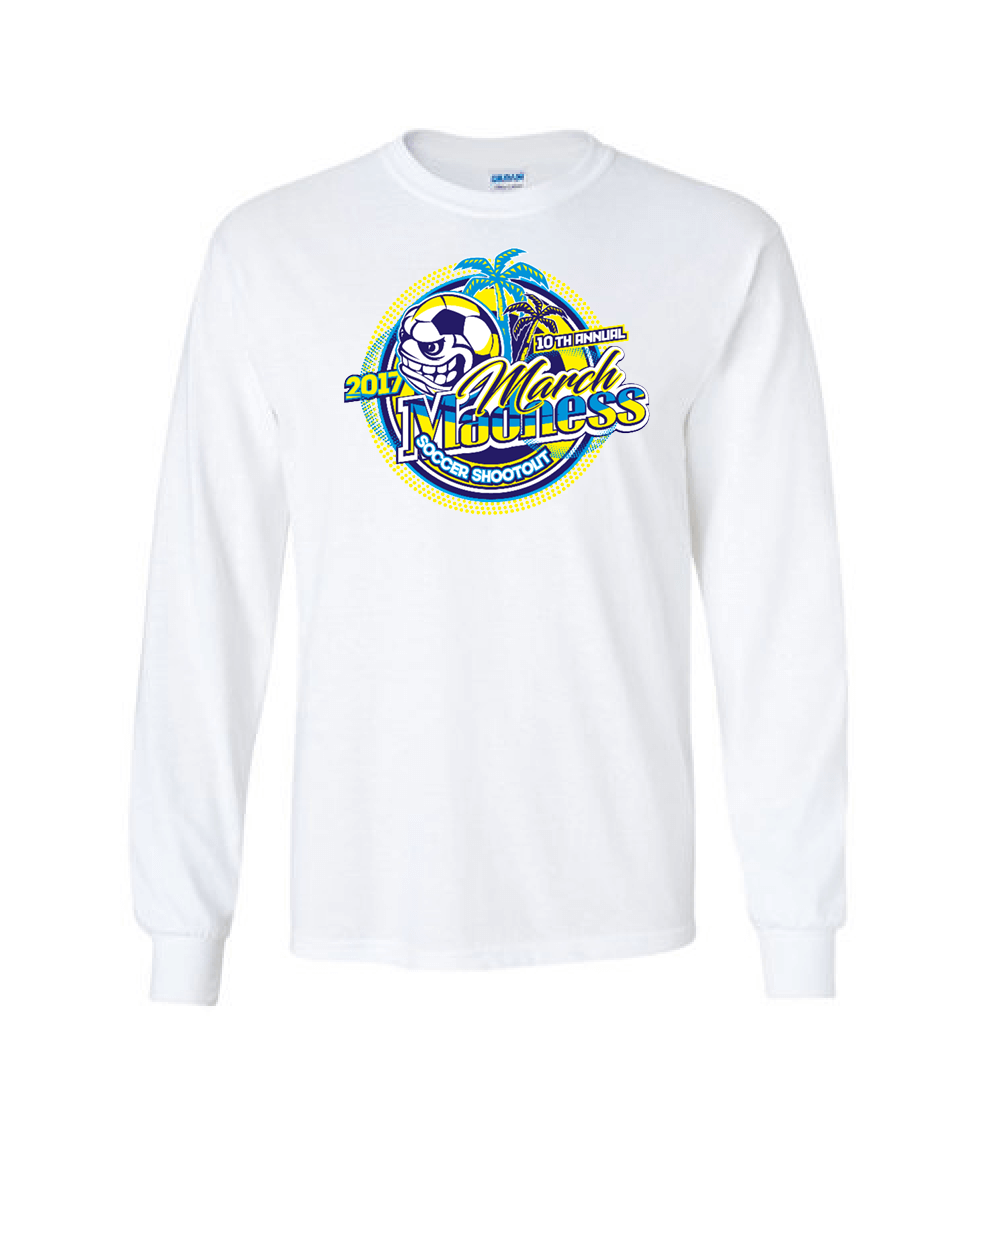 white long sleeve shirt march madness simax sports Long Sleeve Blouses white long sleeve shirt march madness